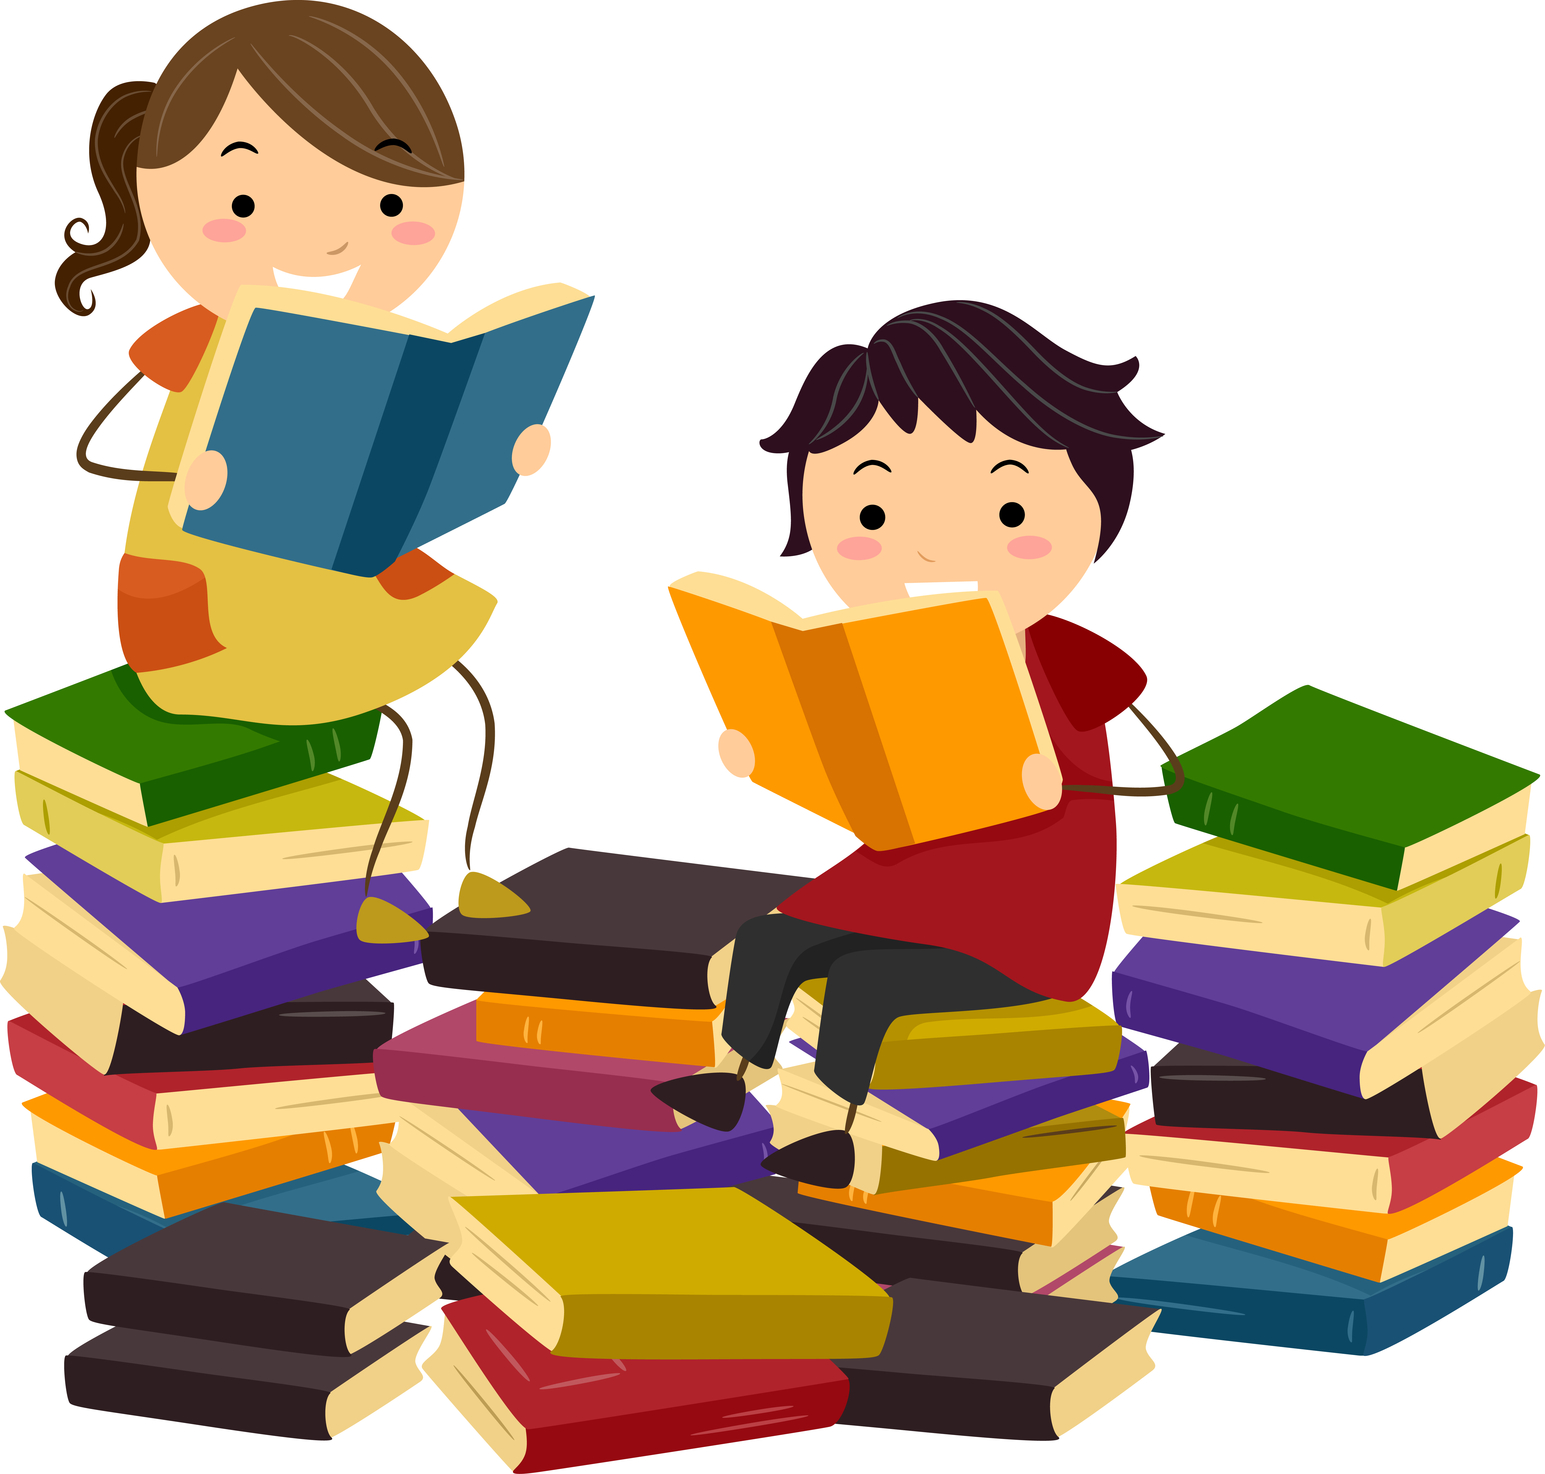 Kids reading free children read the books clipart image.